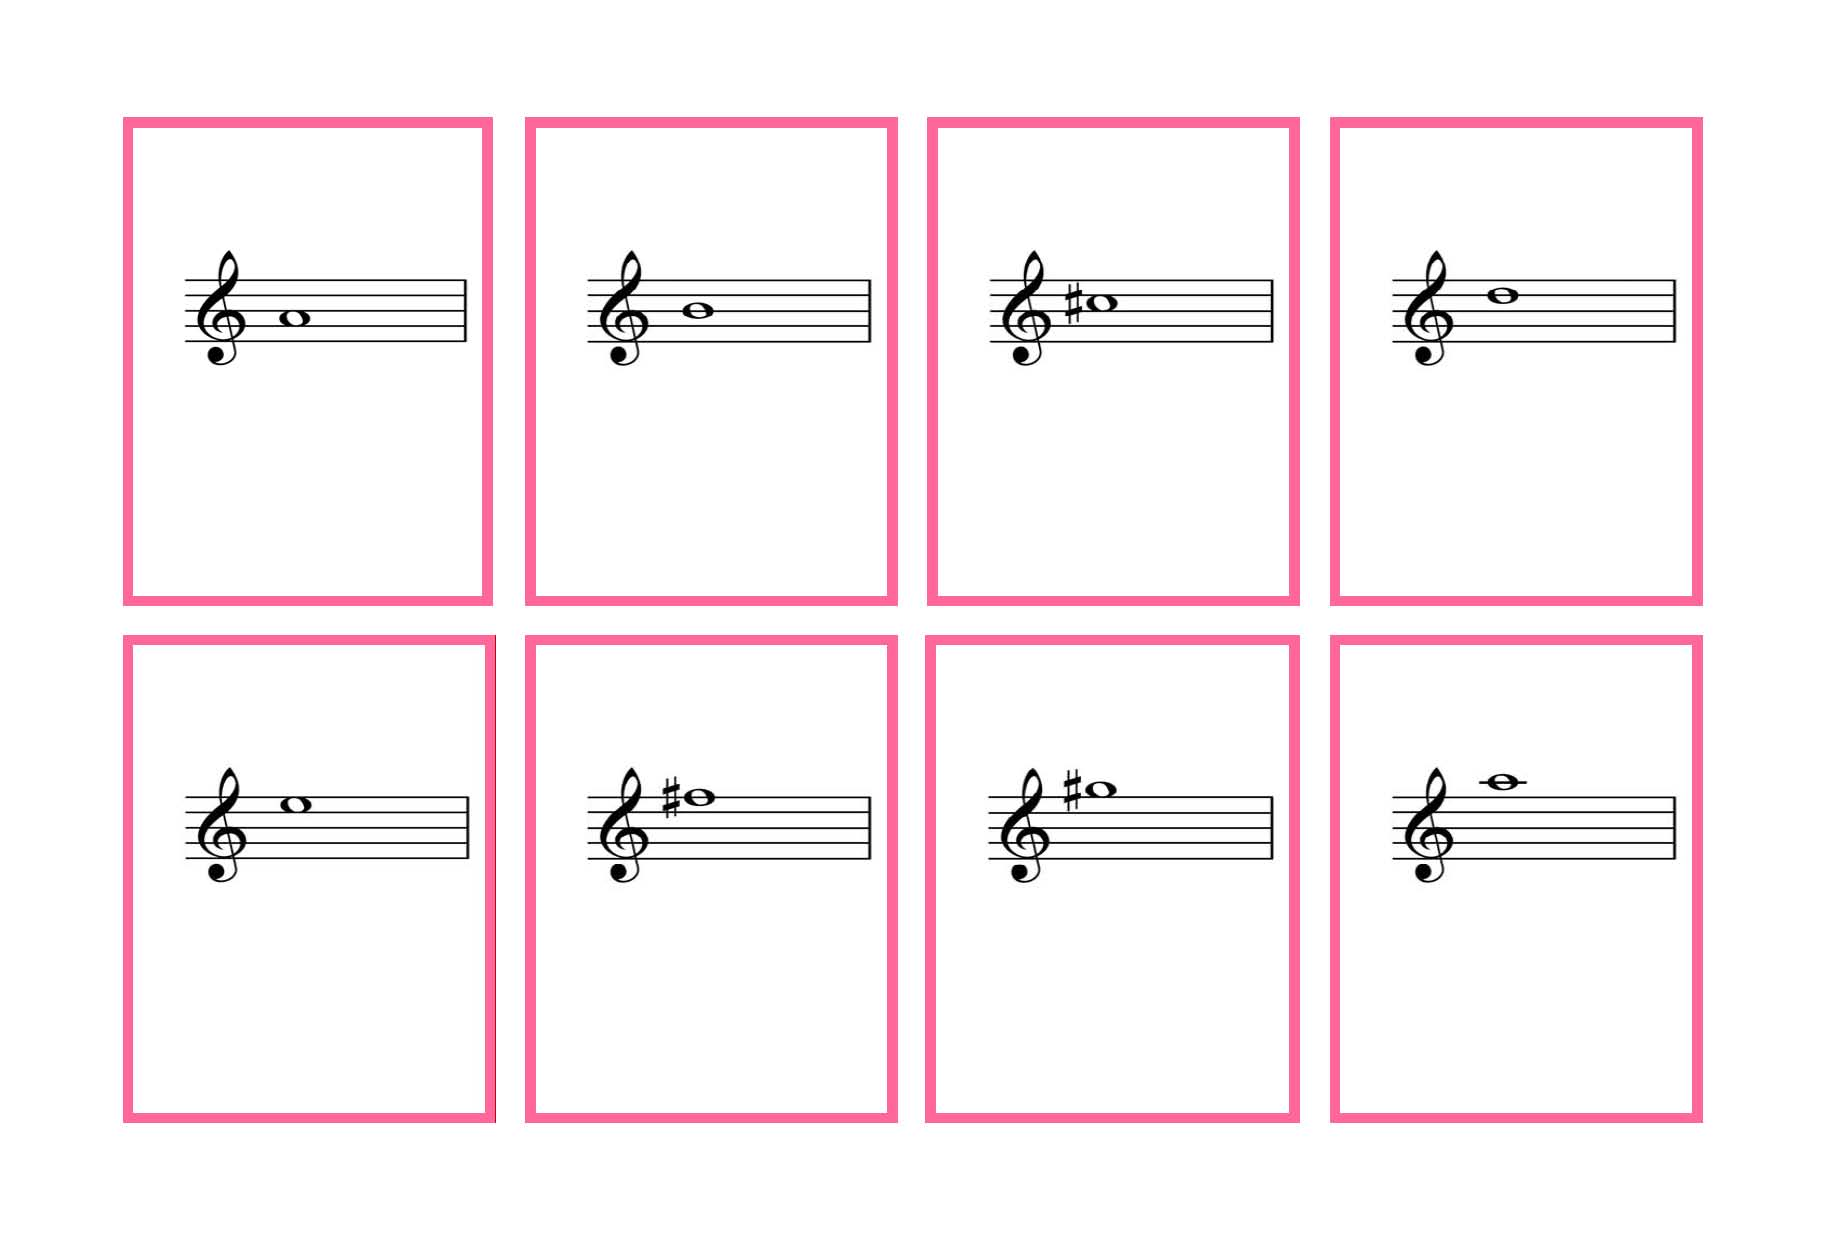 Worksheets Flash Card For Reading complete set violin flash cards printable denley music posted